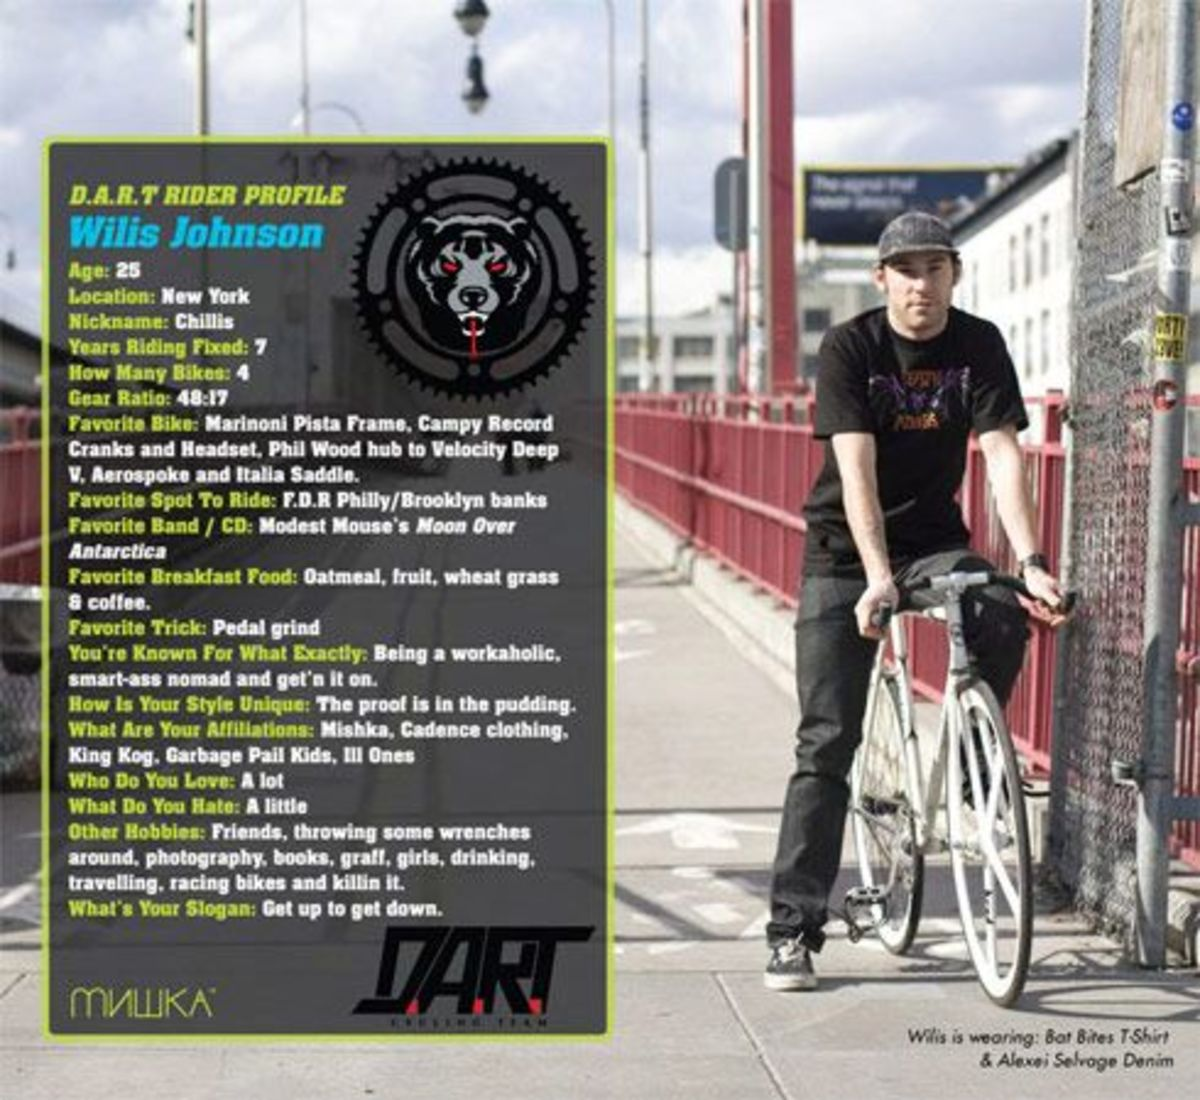 Mishka D.A.R.T. Cycling Team